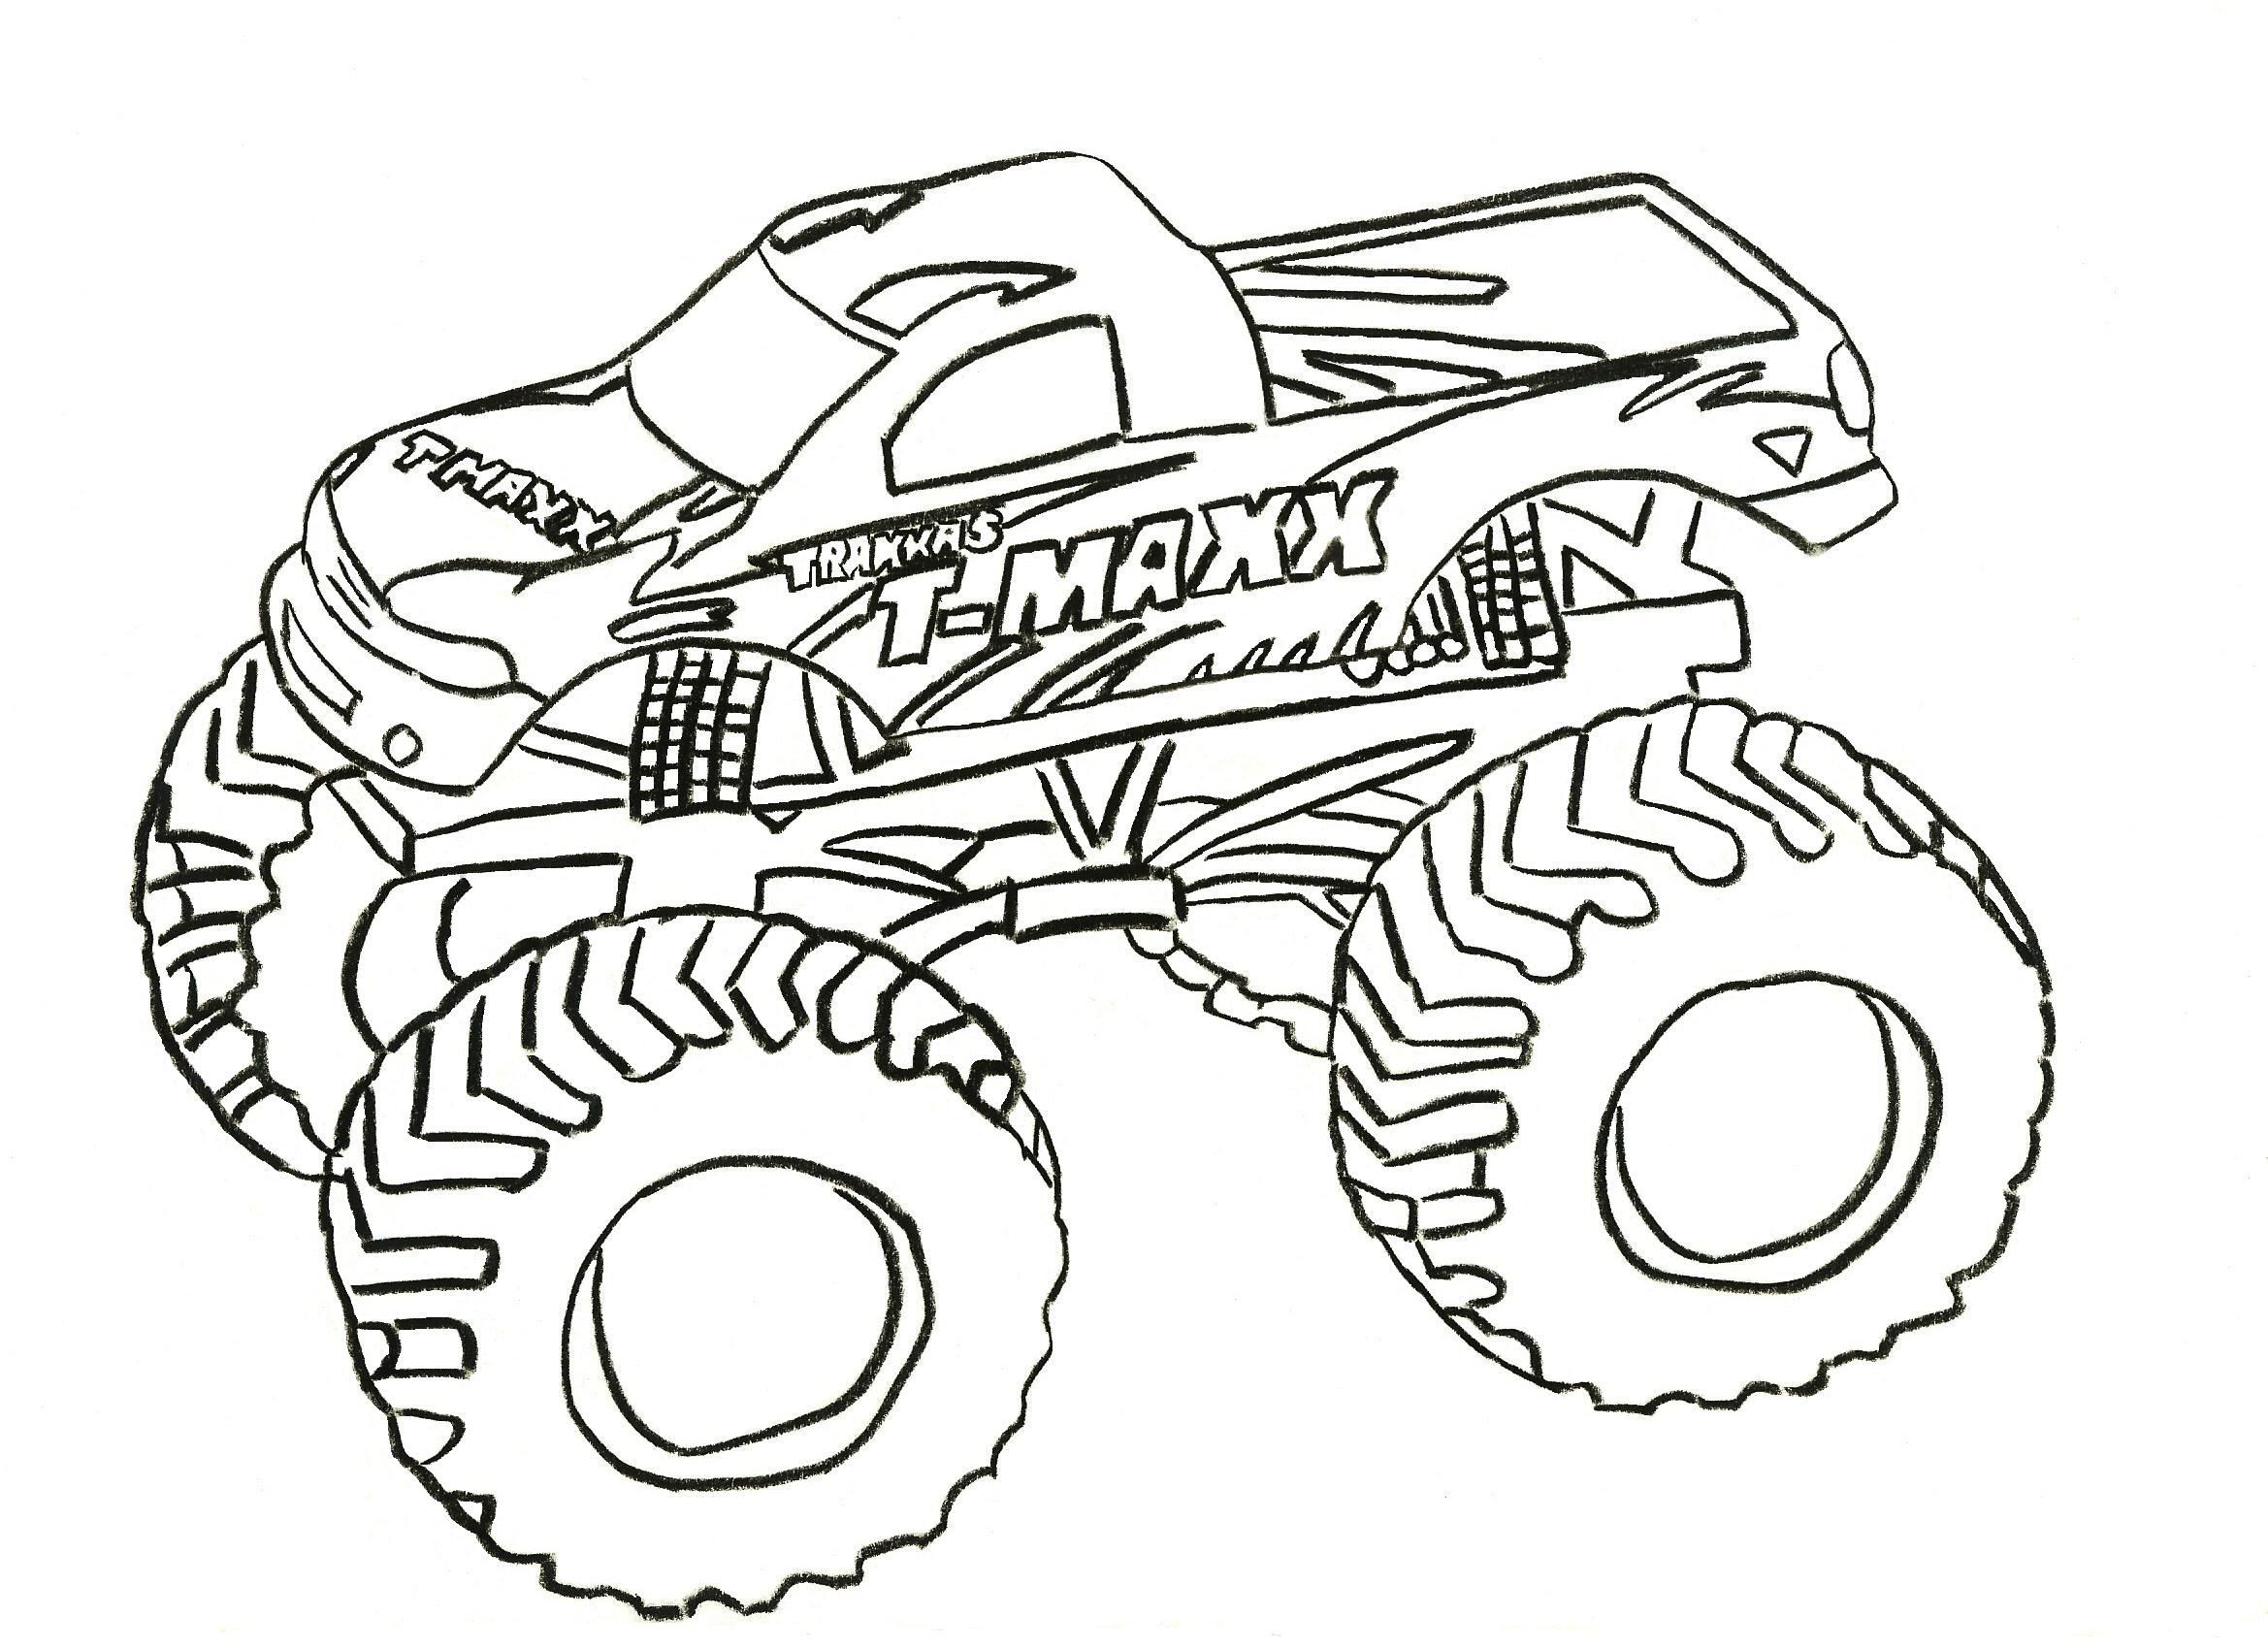 Monster Truck Coloring Pages In 2020 Monster Truck Coloring Pages Truck Coloring Pages Coloring Pages For Boys